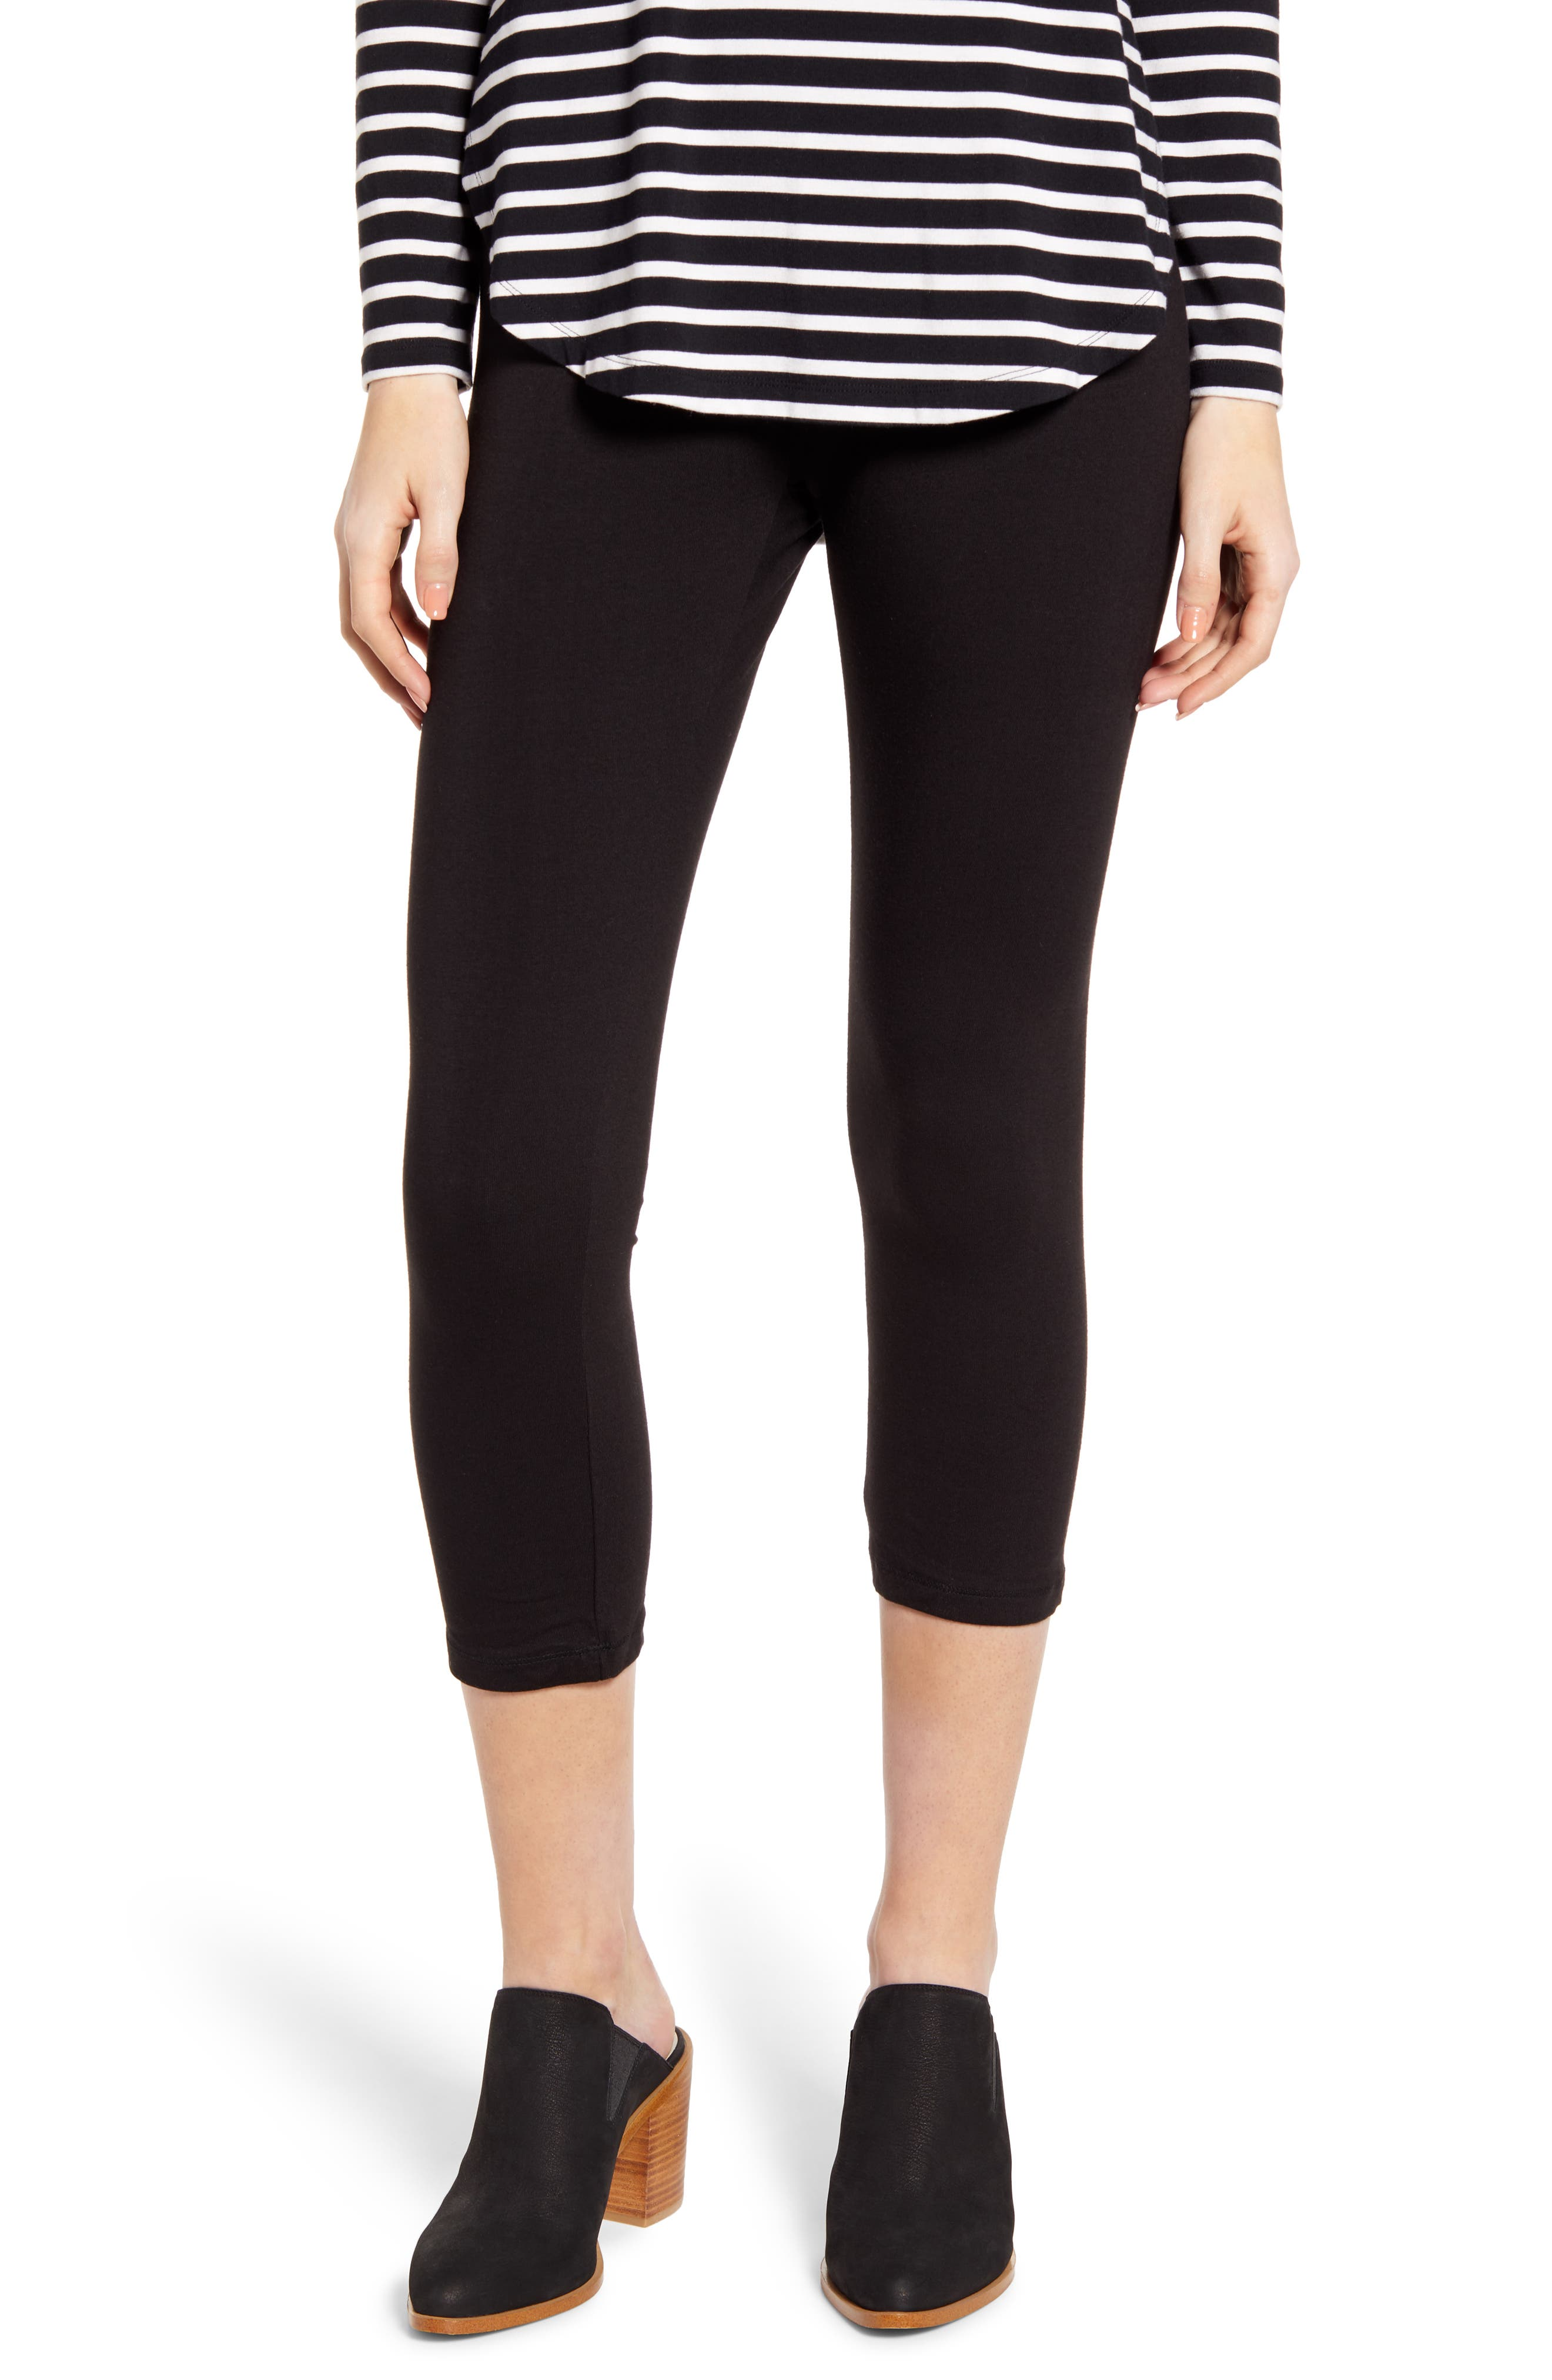 Plus Size Hue Ultra Wide Waistband Capri Leggings, Black